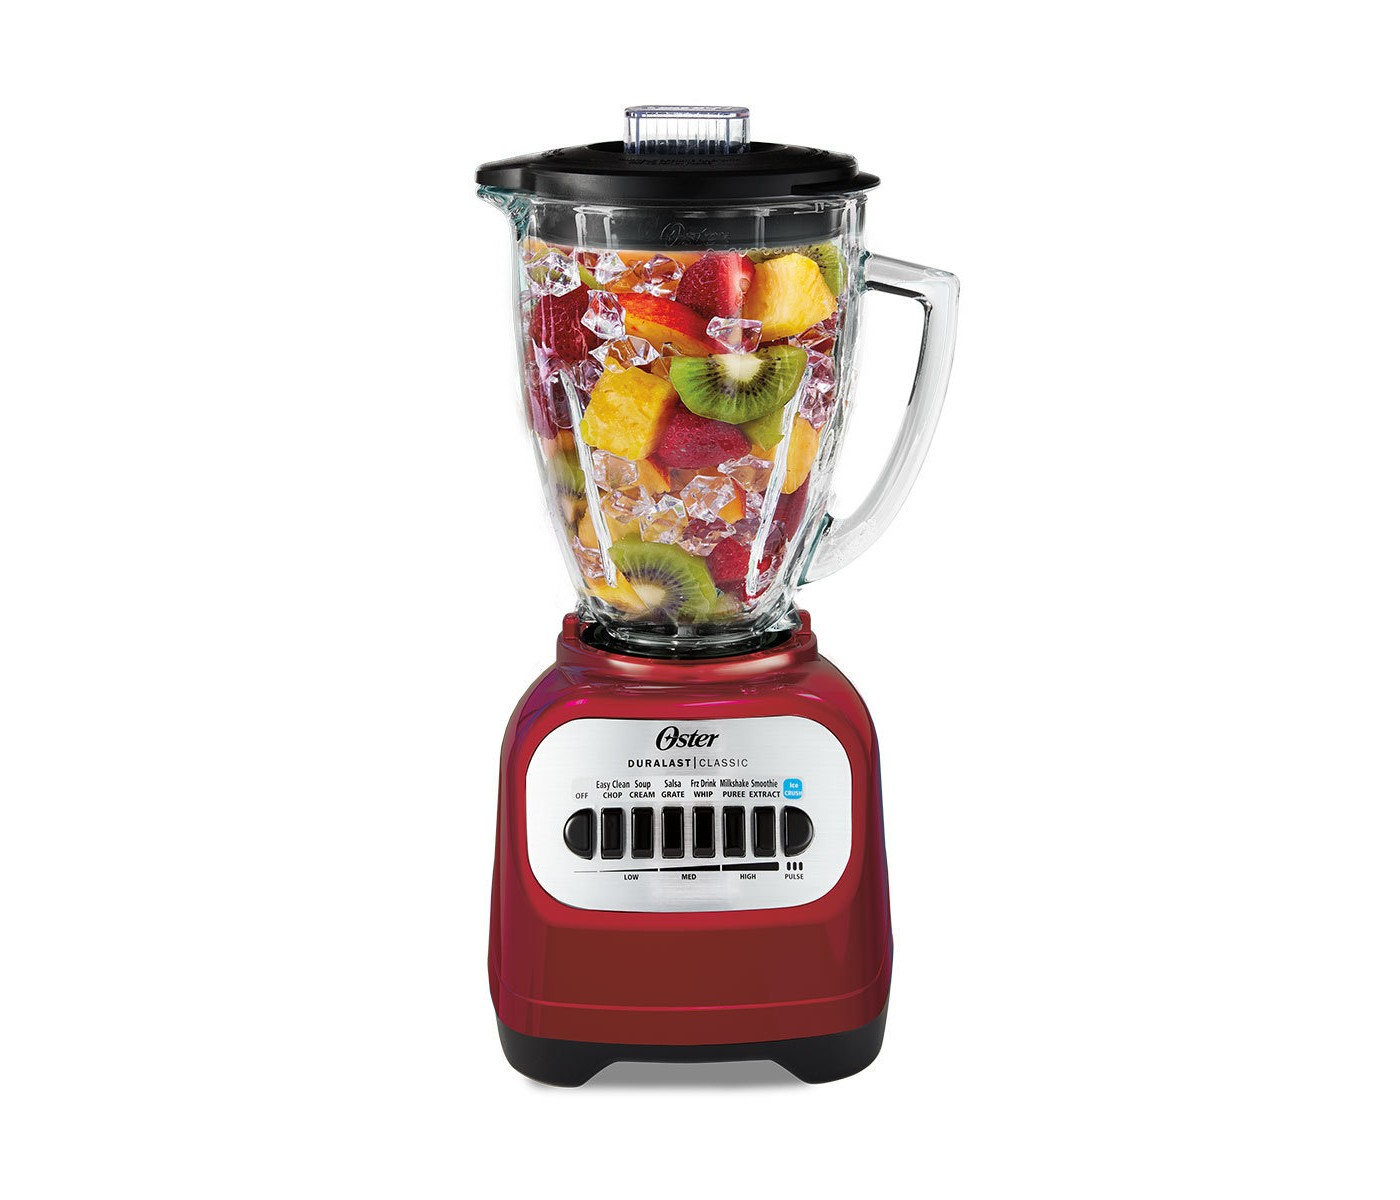 Save 25% on Oster Classic Series Blender with Travel Smoothie Cup - Red BLSTCG-RBG-000